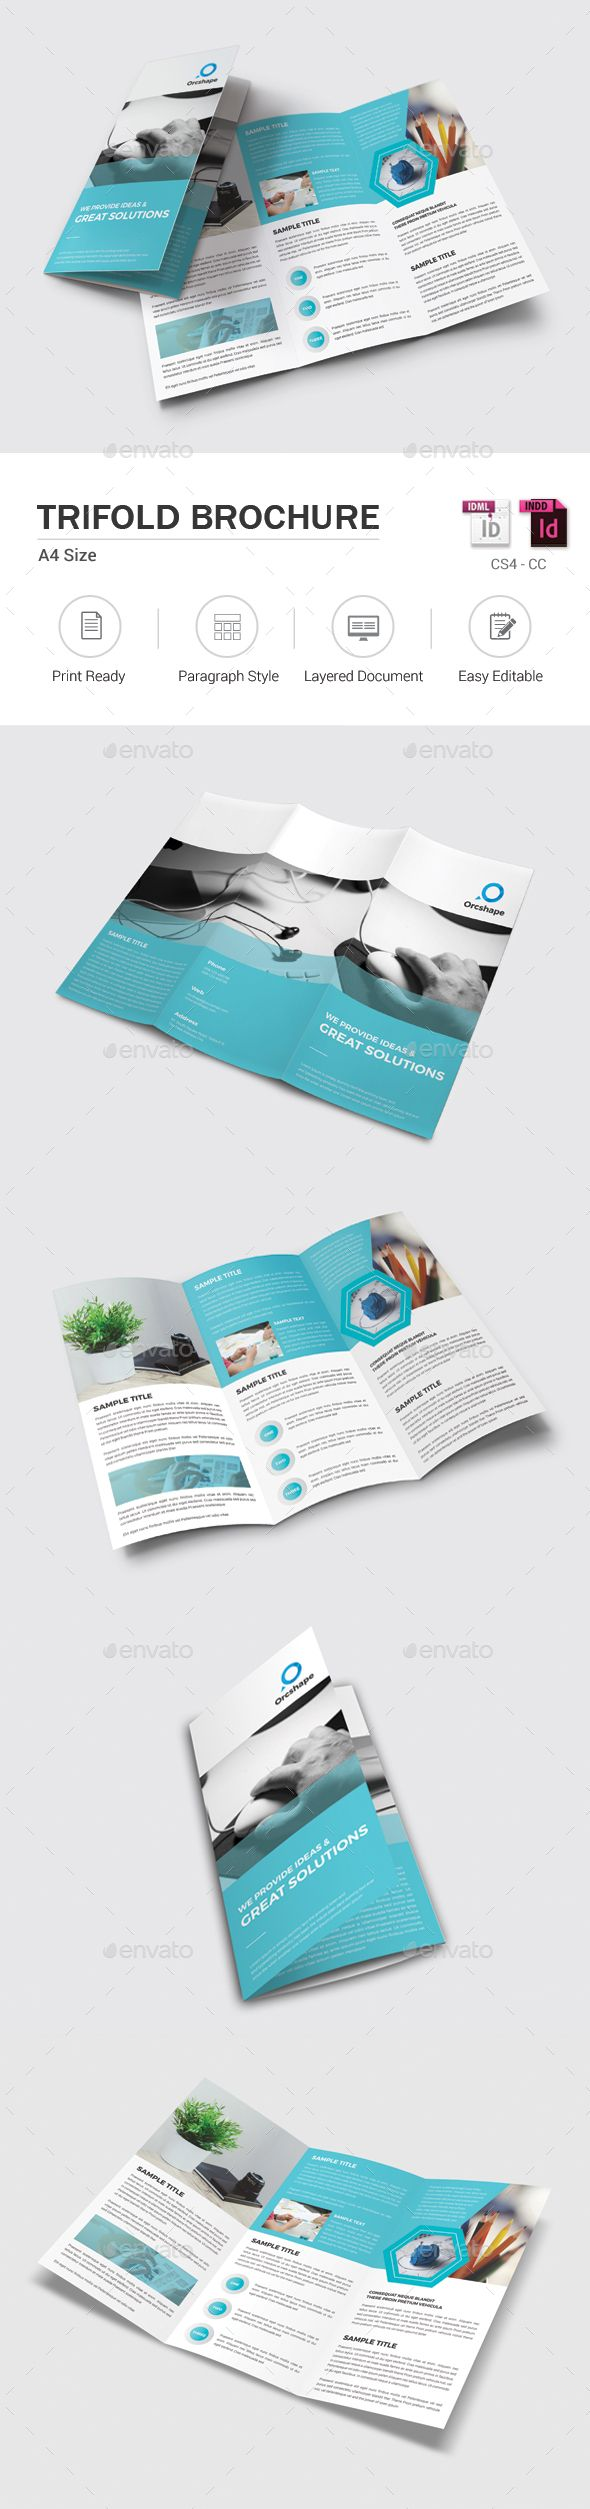 Corporate Trifold Brochure Template InDesign INDD